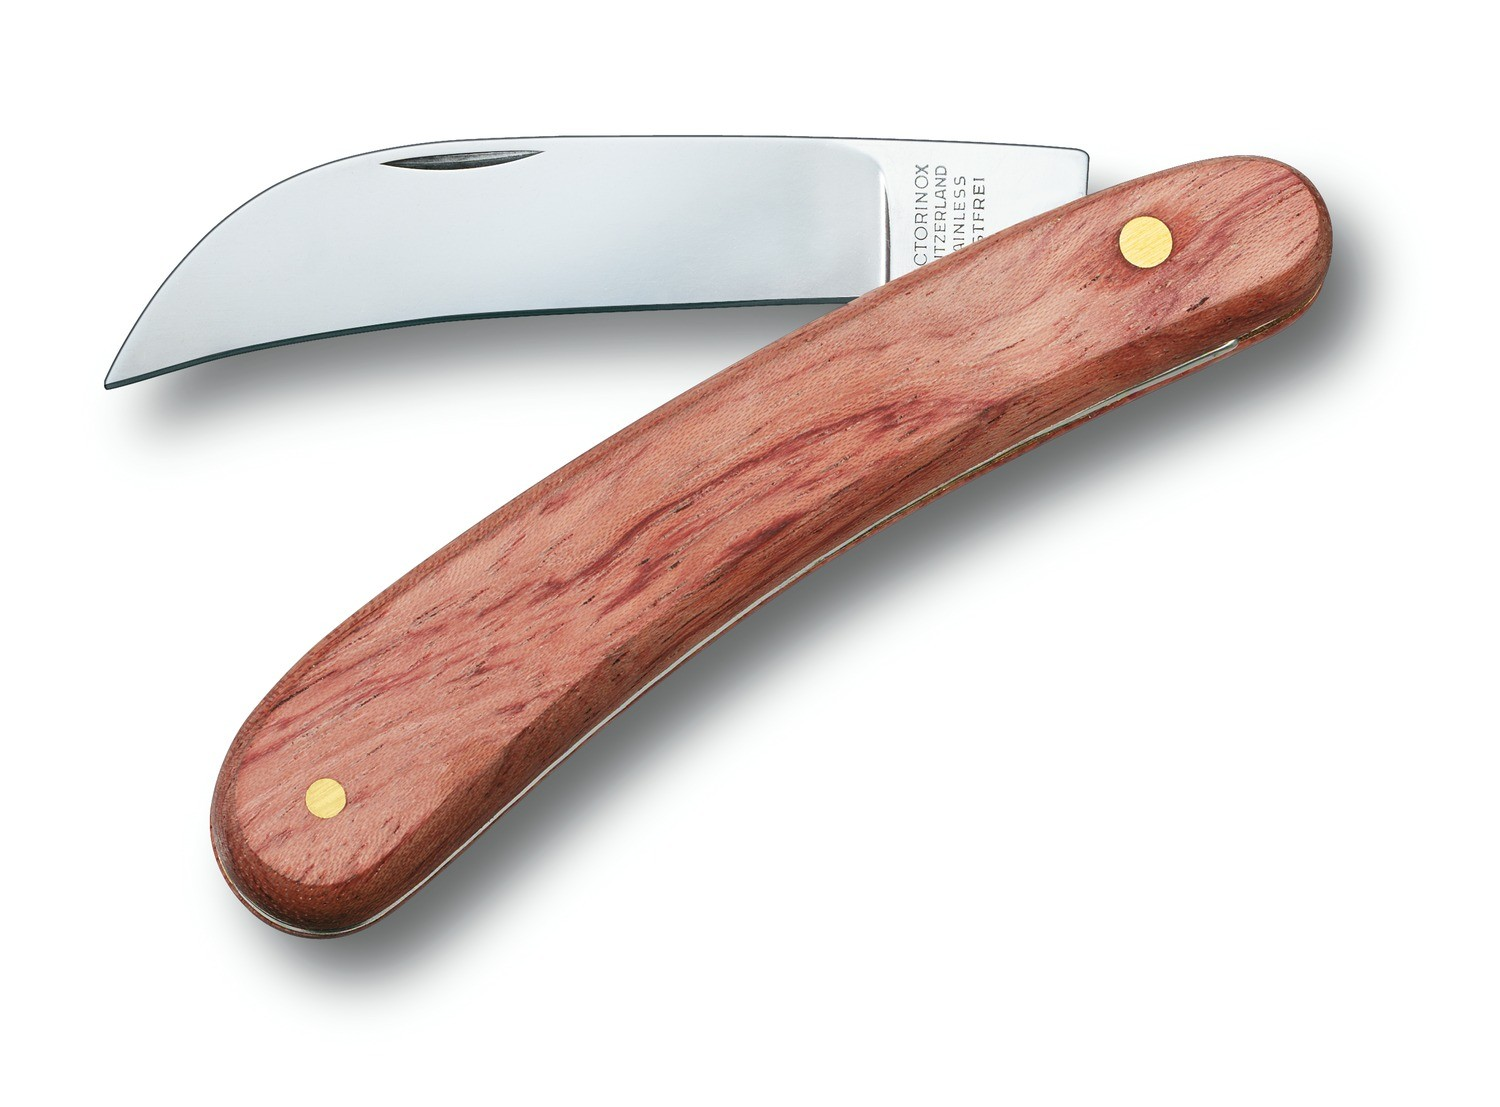 Grafting and Pruning knife SKU# 1.9200